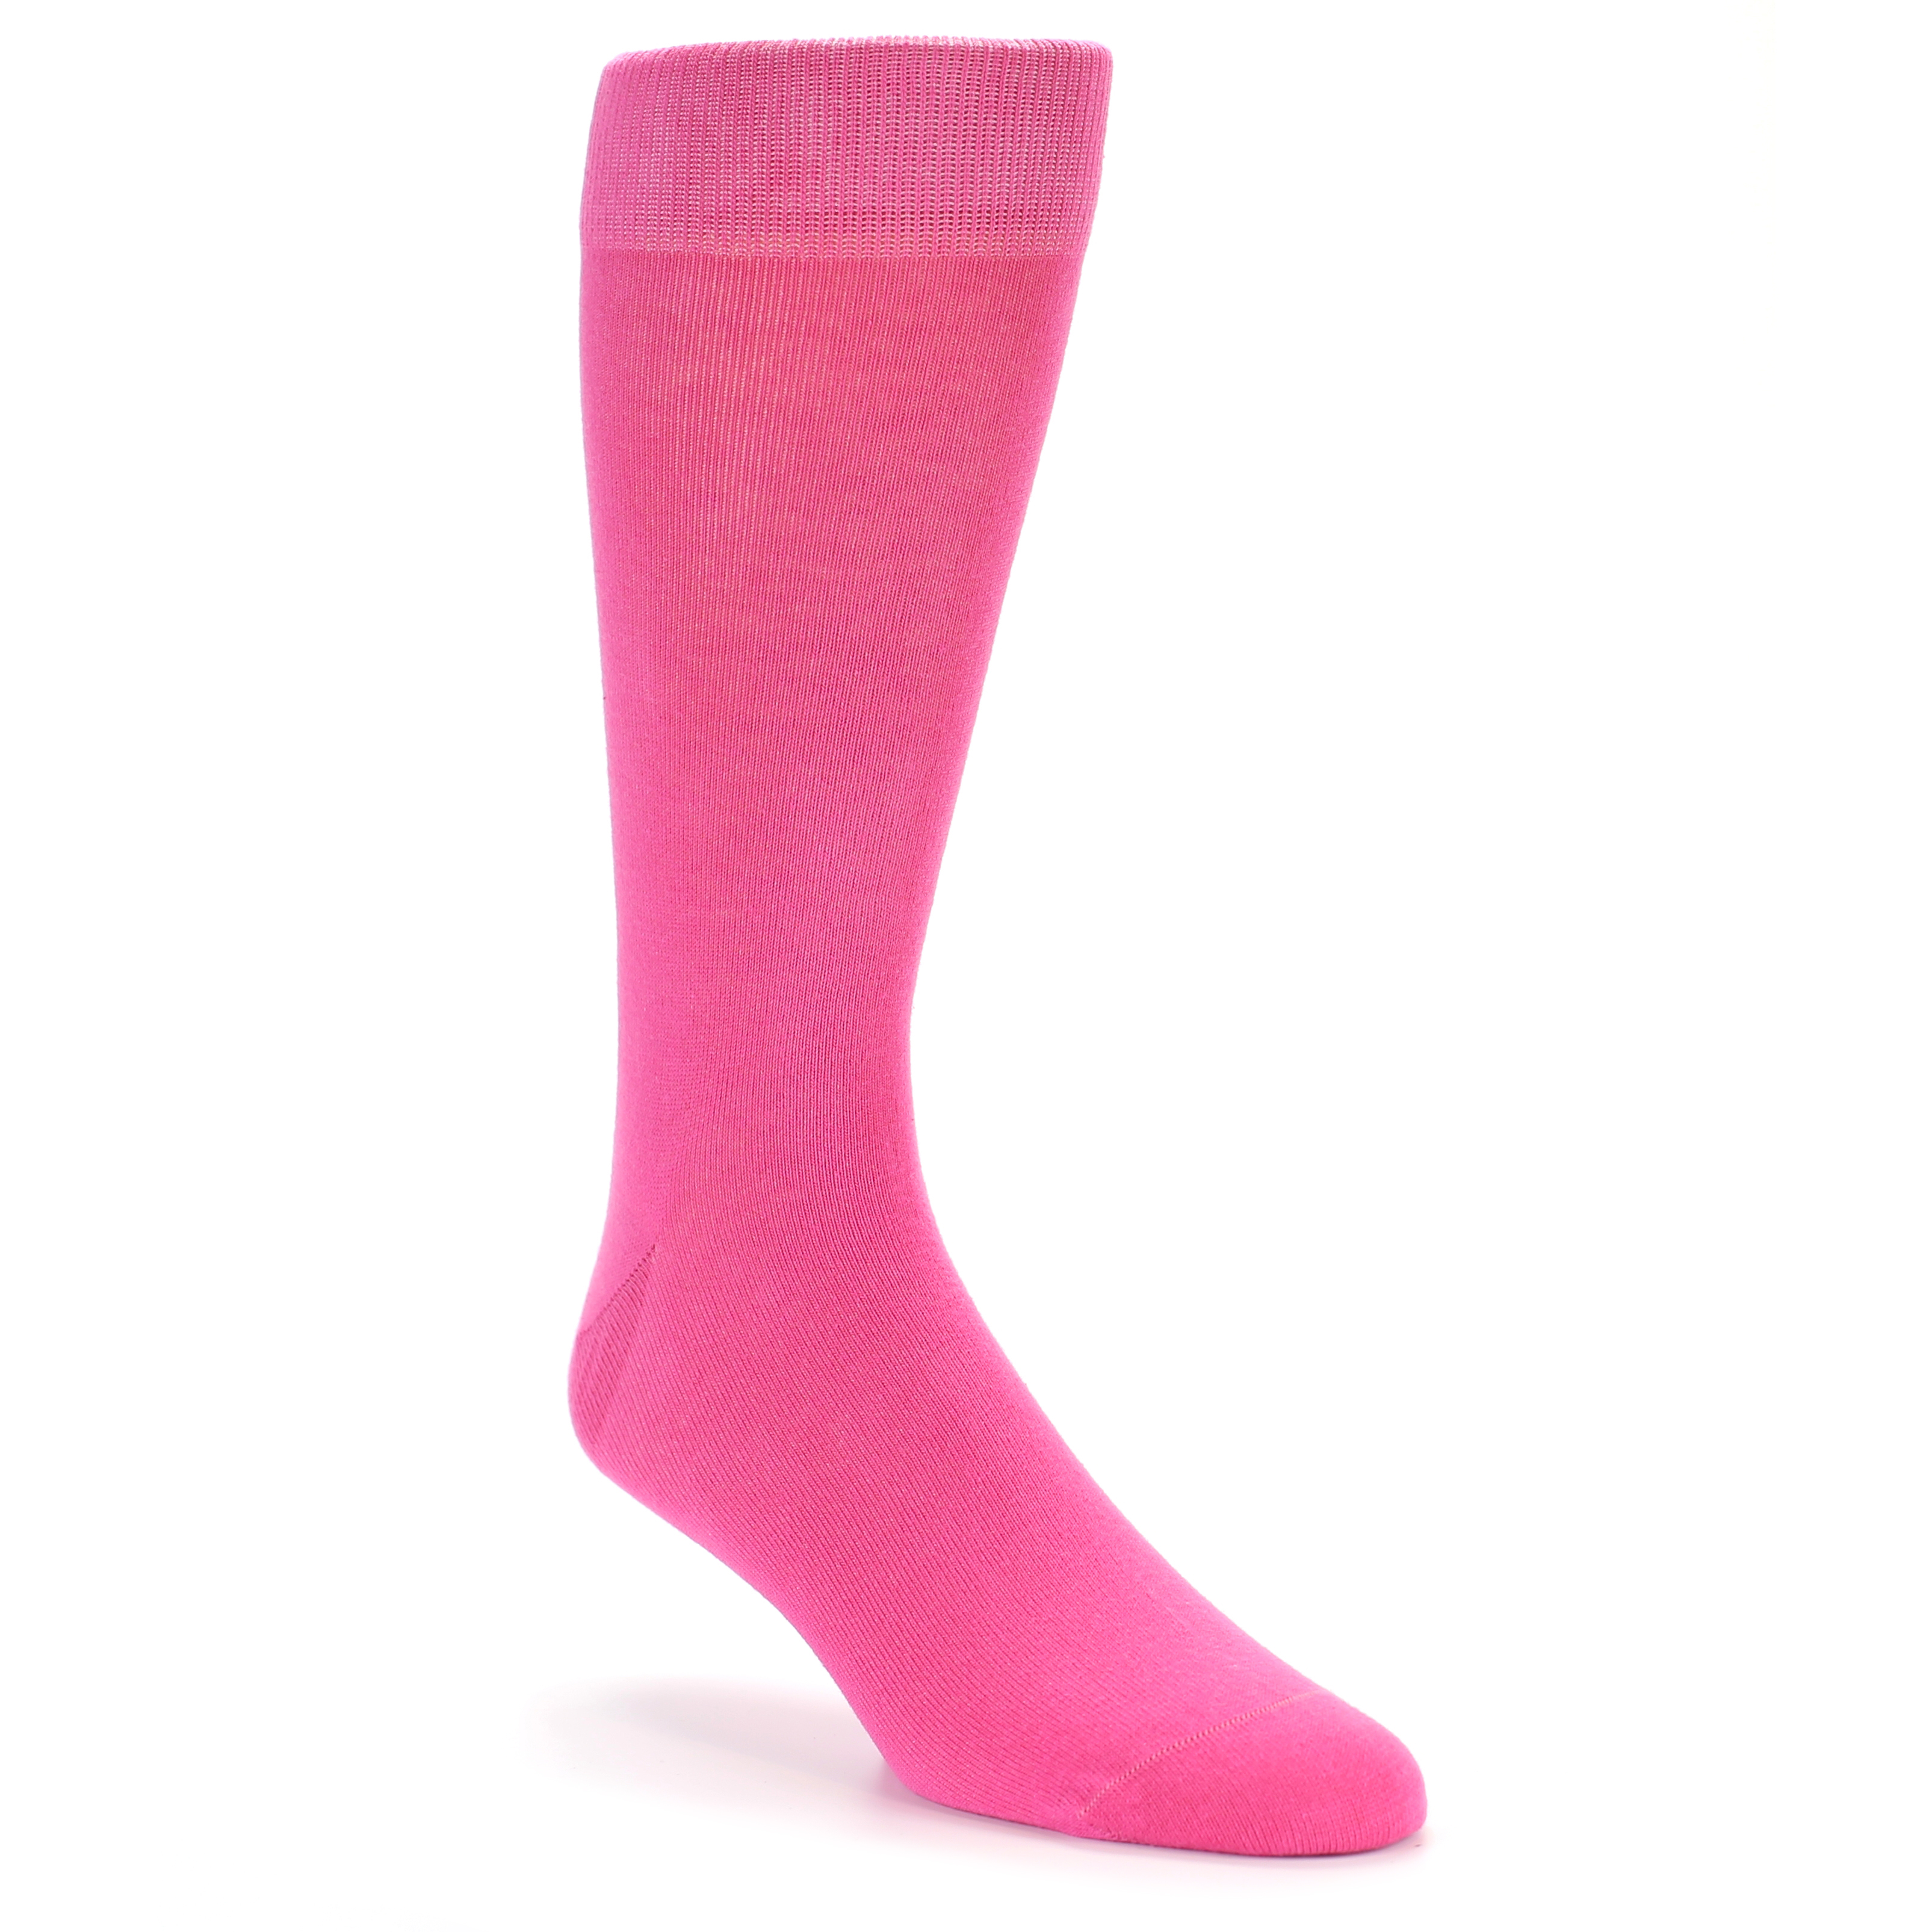 f98a8bd249103 Hot Pink Solid Color Men's Dress Socks - boldSOCKS